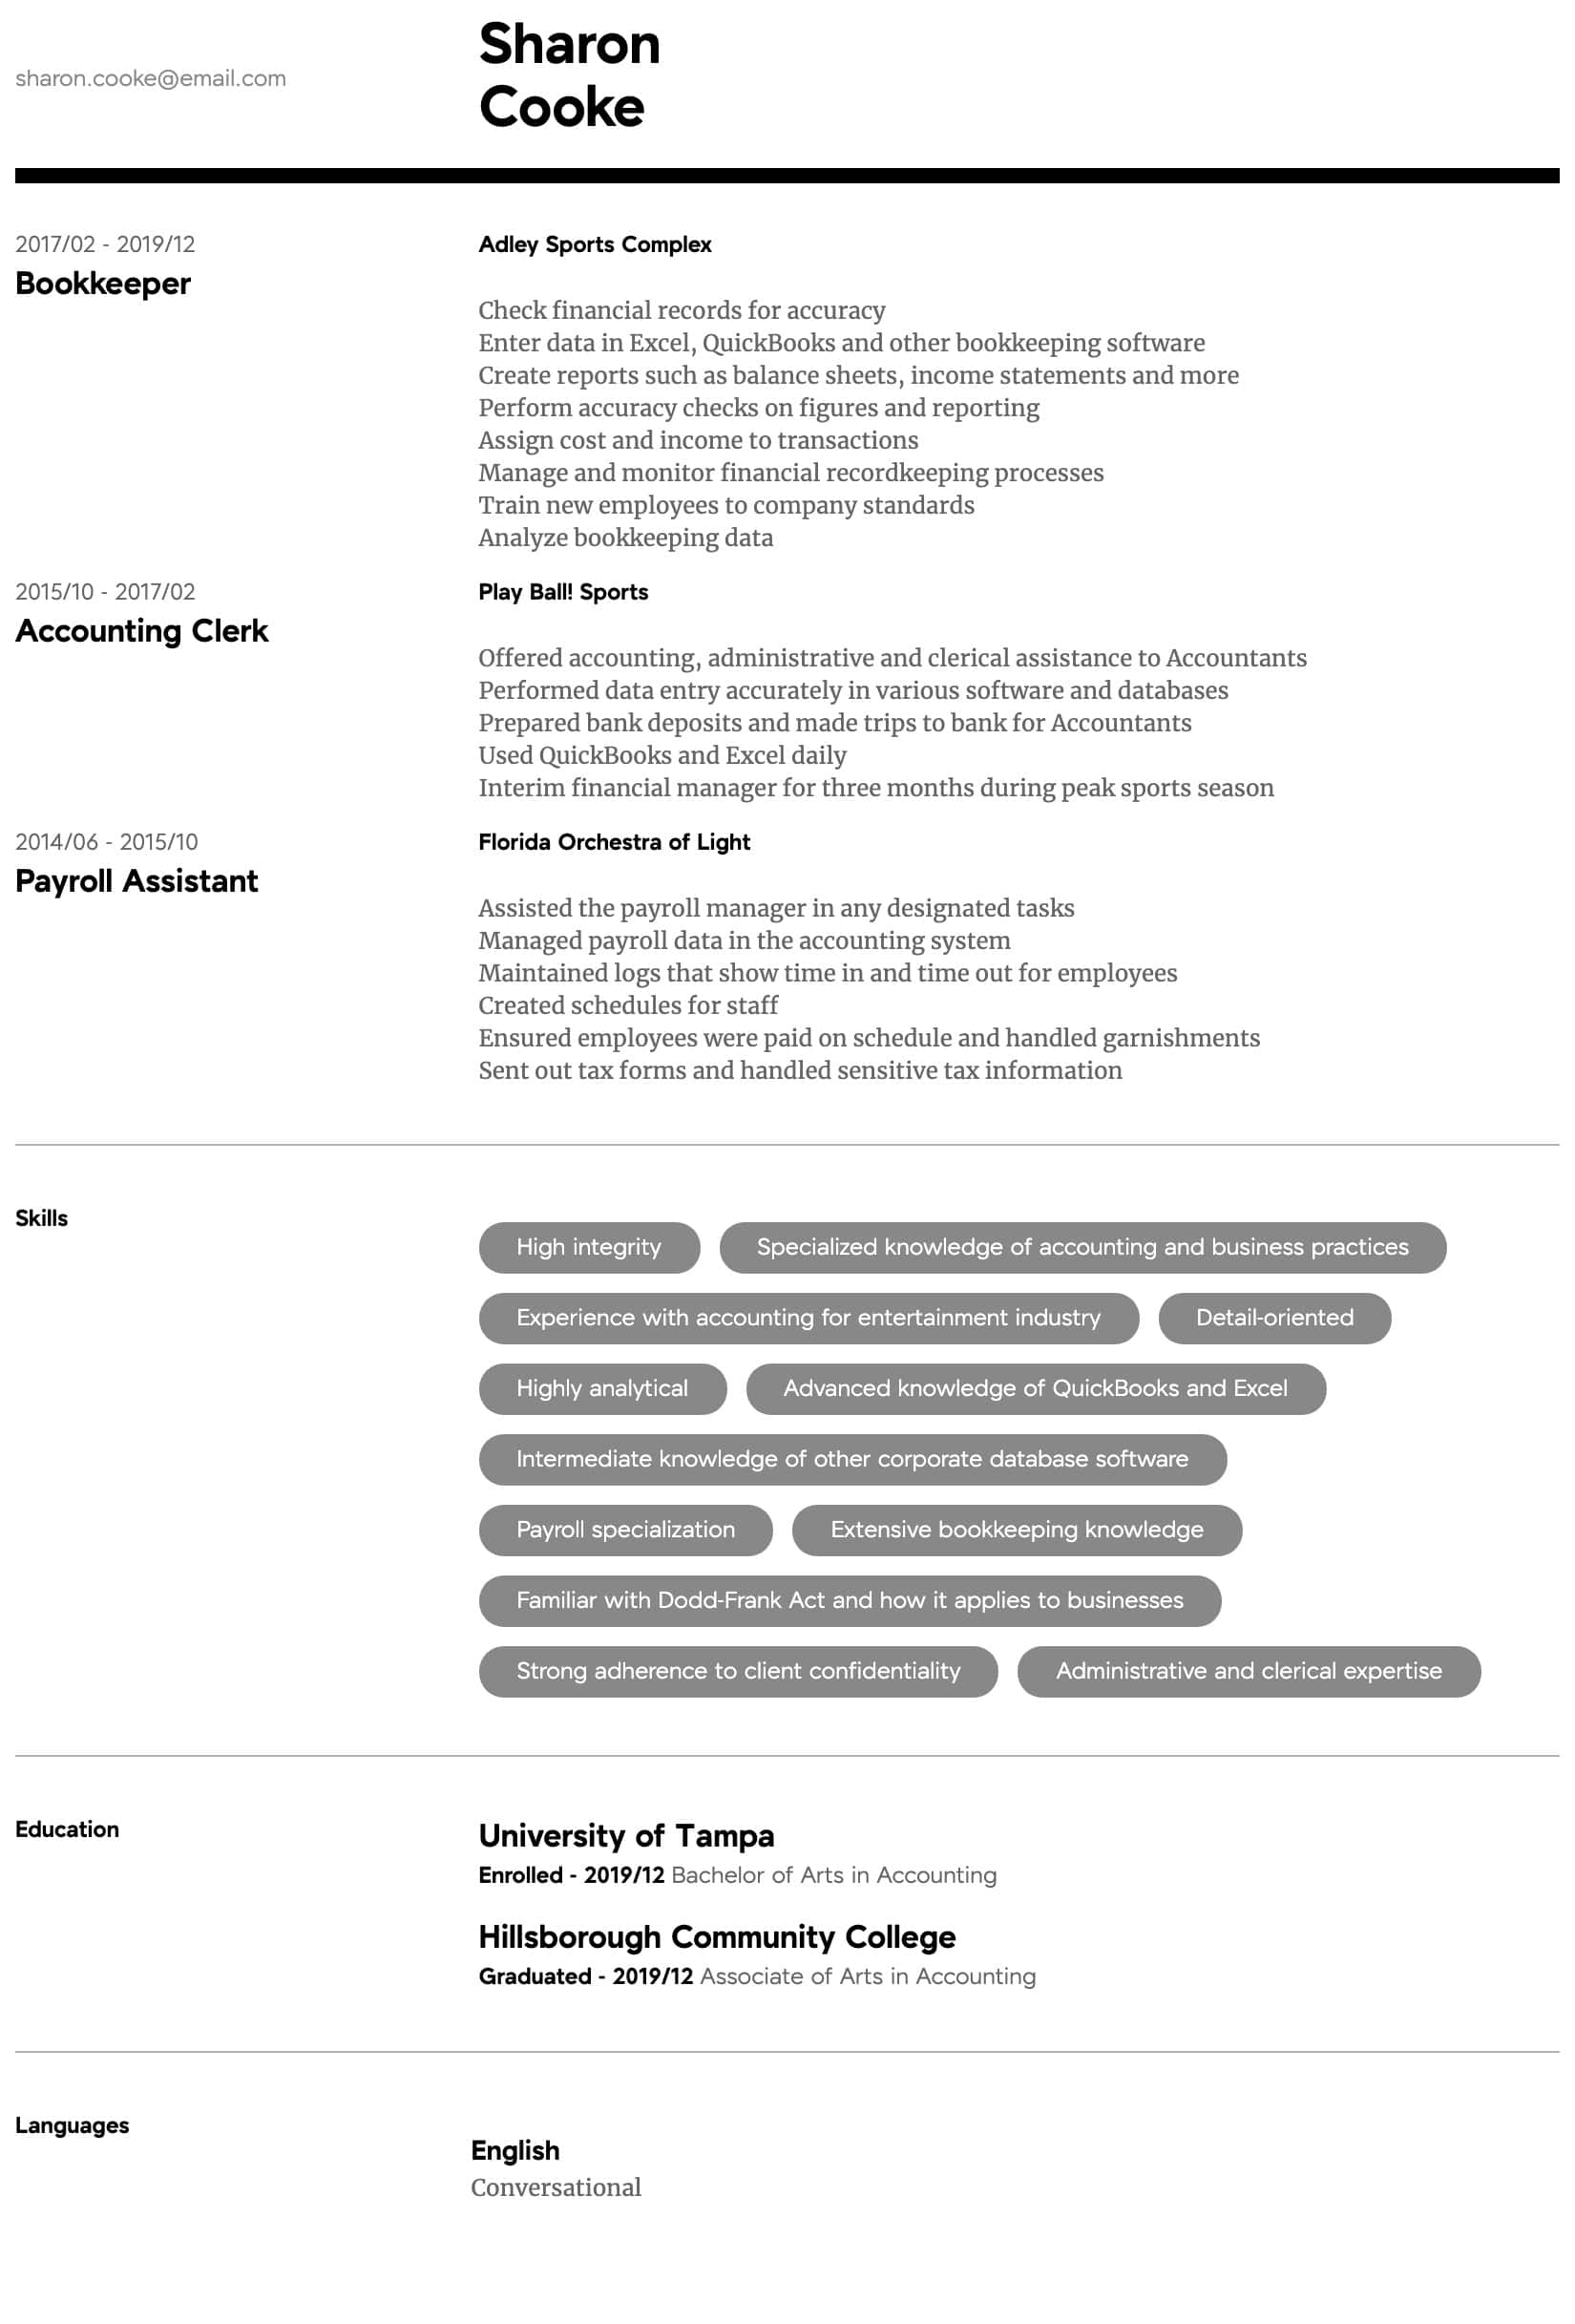 accountant resume samples all experience levels areas of expertise for intermediate Resume Areas Of Expertise For Accountant Resume